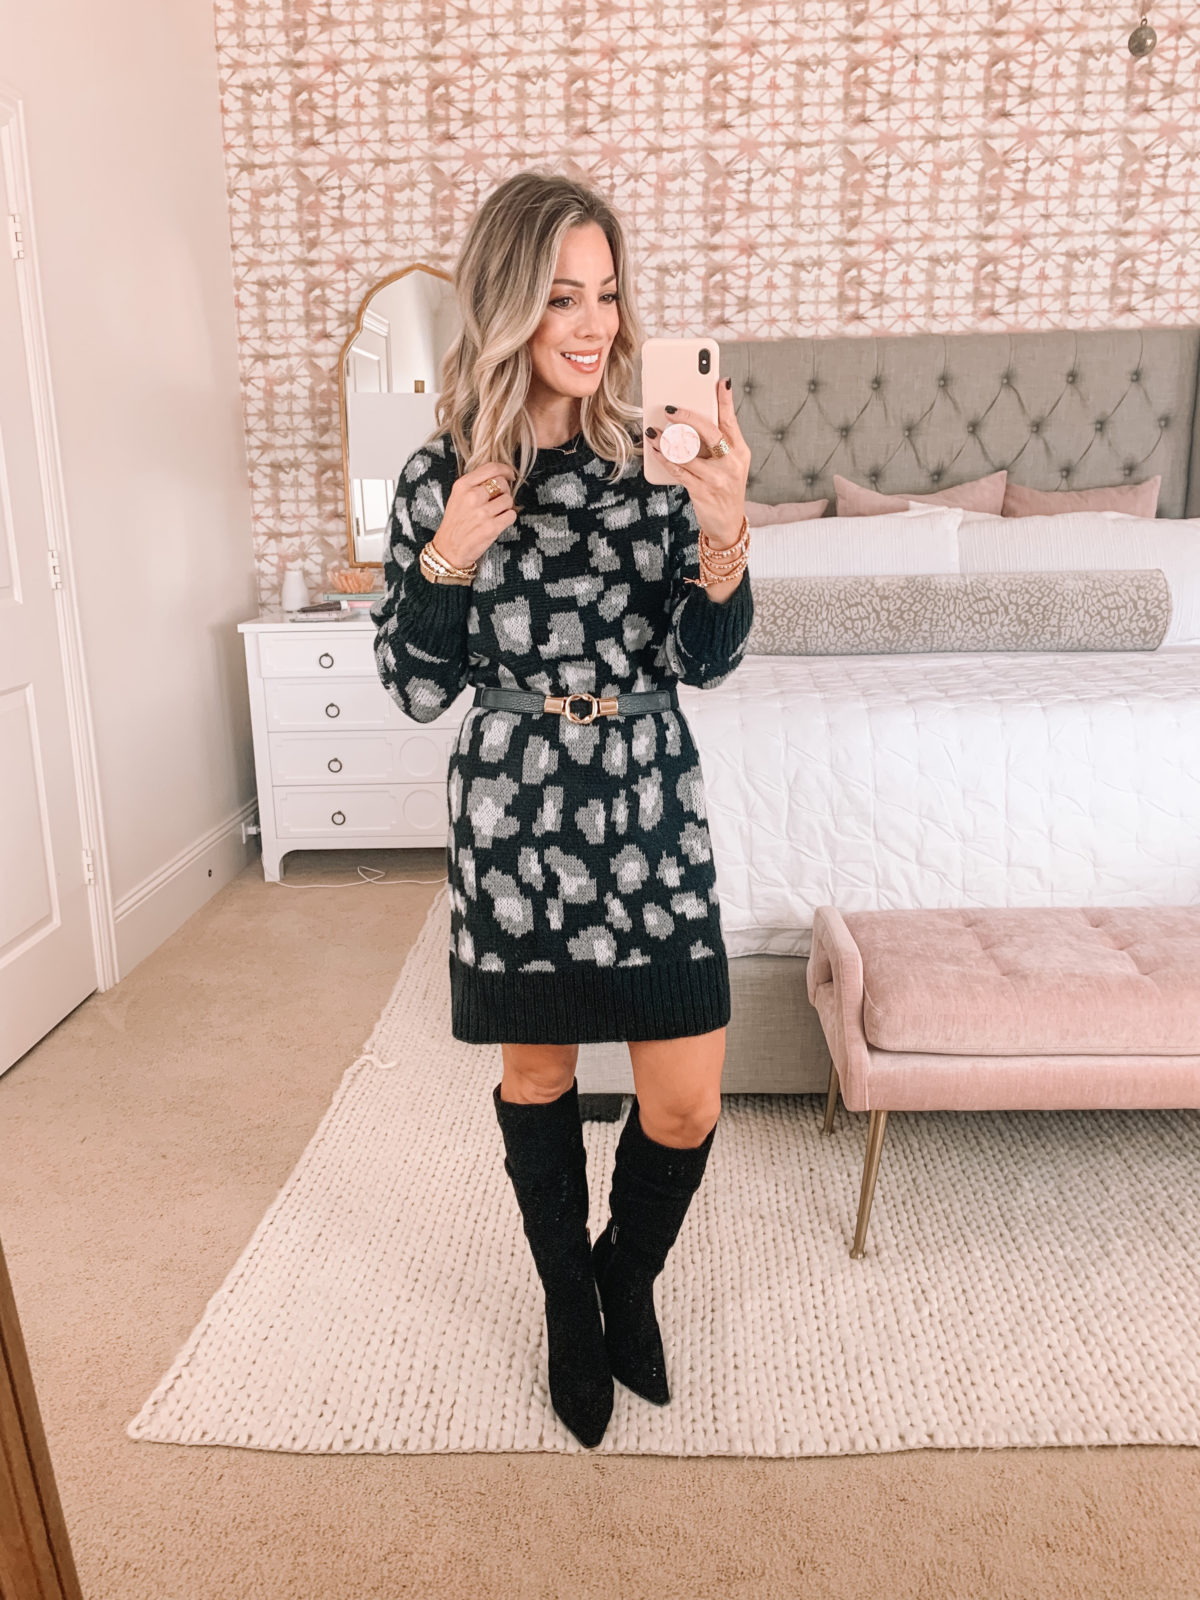 Walmart Fashion Finds, Black and White Leopard Sweater Dress, Knee High Boots, Belt